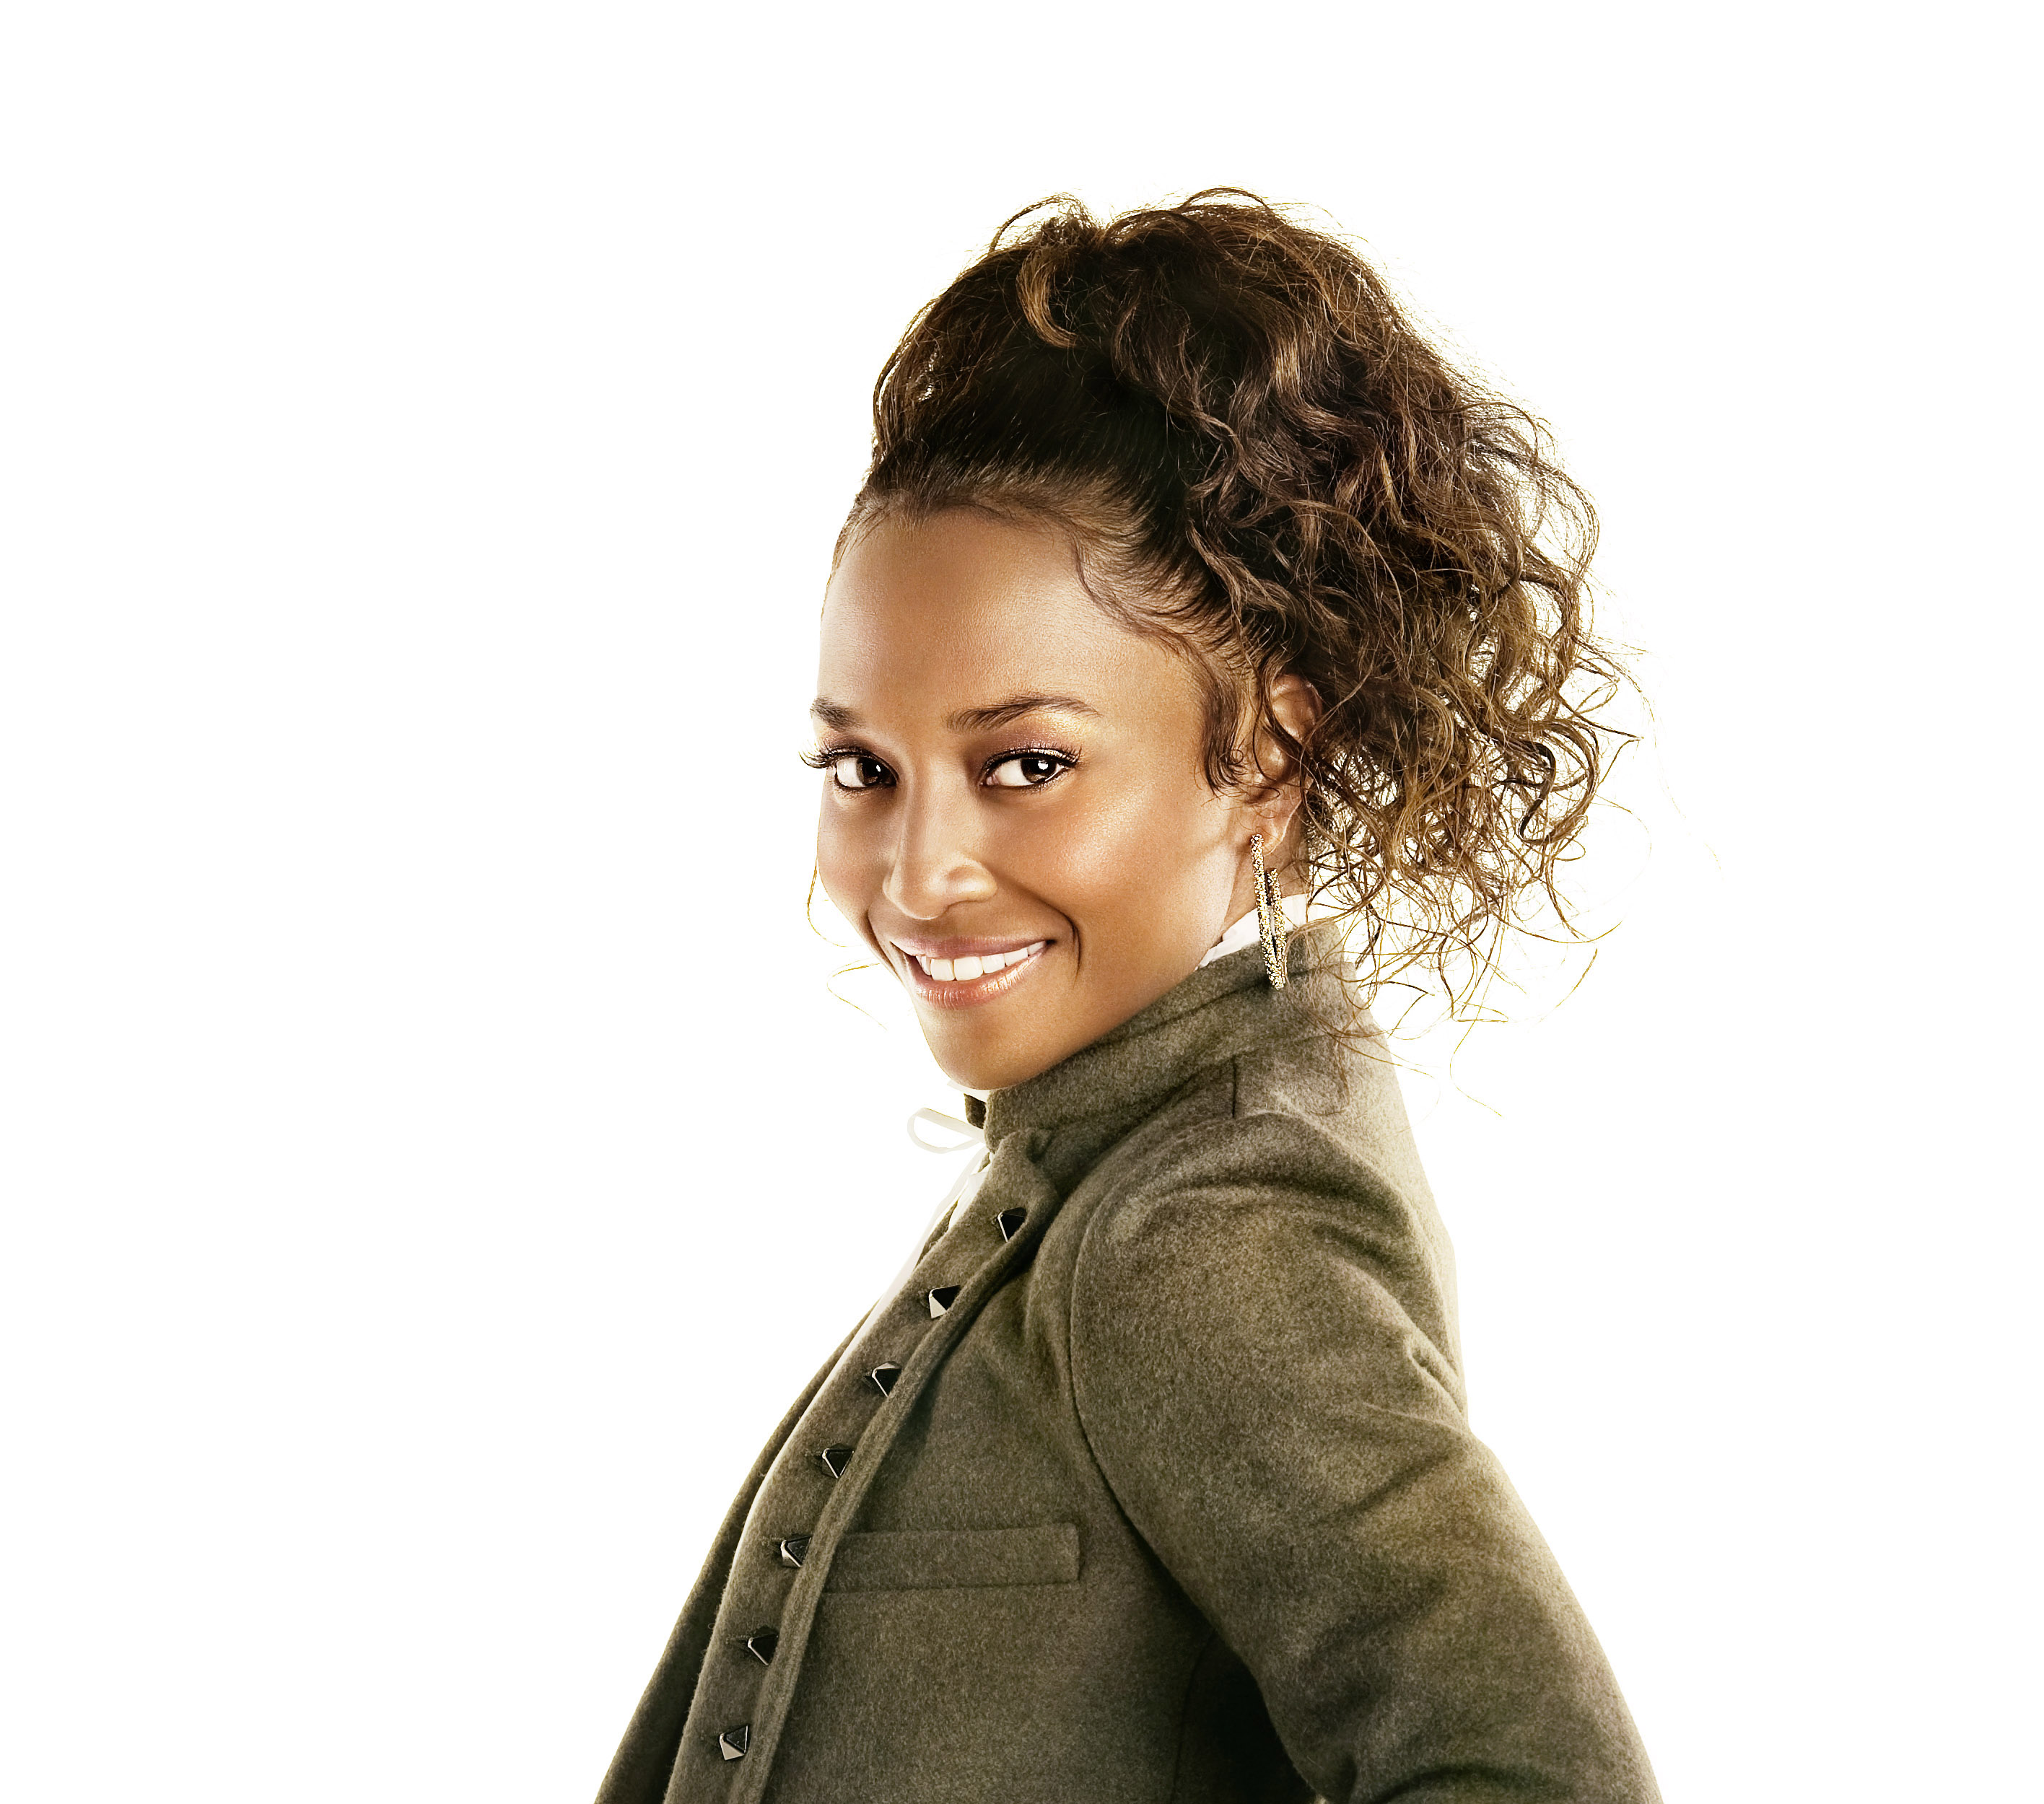 wexford black single women Online personals with photos of single men and women seeking each other for dating, love, and marriage in ireland.